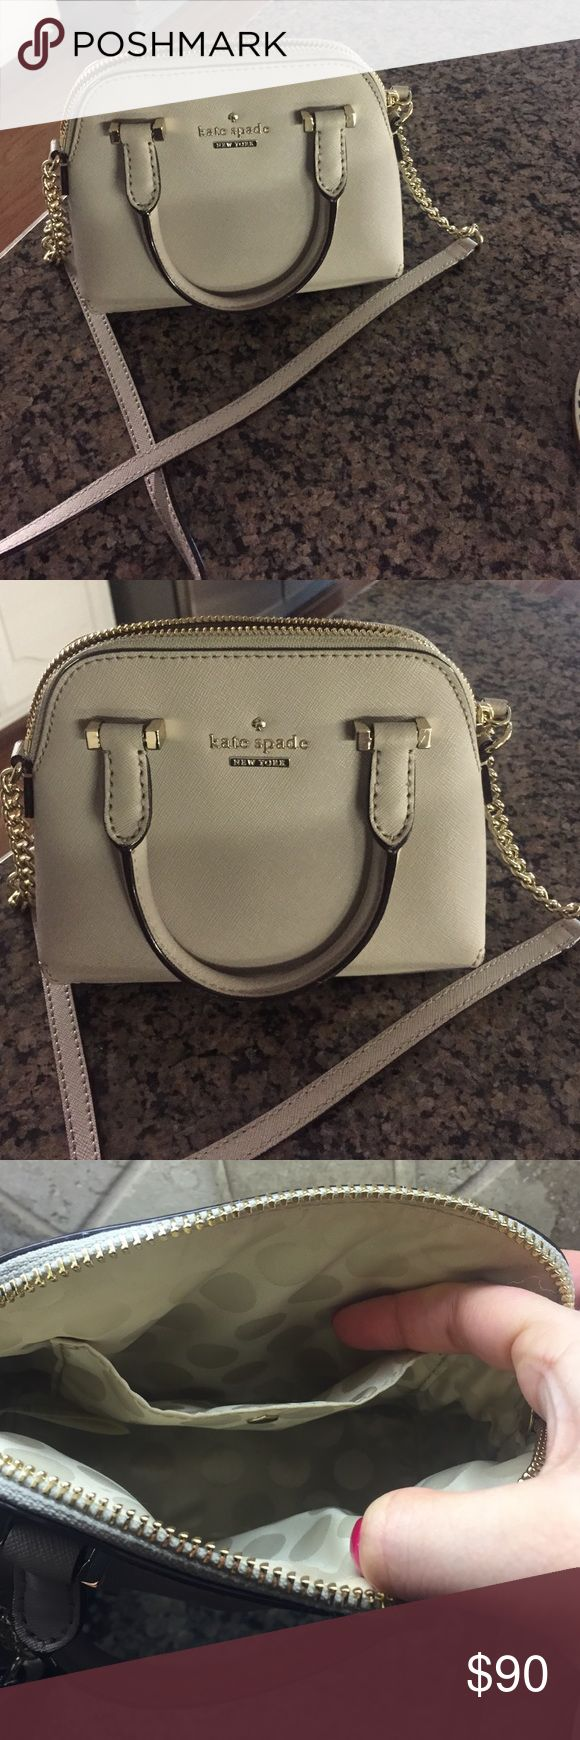 Kate Spade Cedar Street Mini Maise Purse - Cream Love this neutral purse, just didn't carry it enough. Bought from Kate Spade store at the mall directly, authentic.  Only carried once or twice. Fits quite a bit even though it's a mini. Any questions please ask! kate spade Bags Crossbody Bags